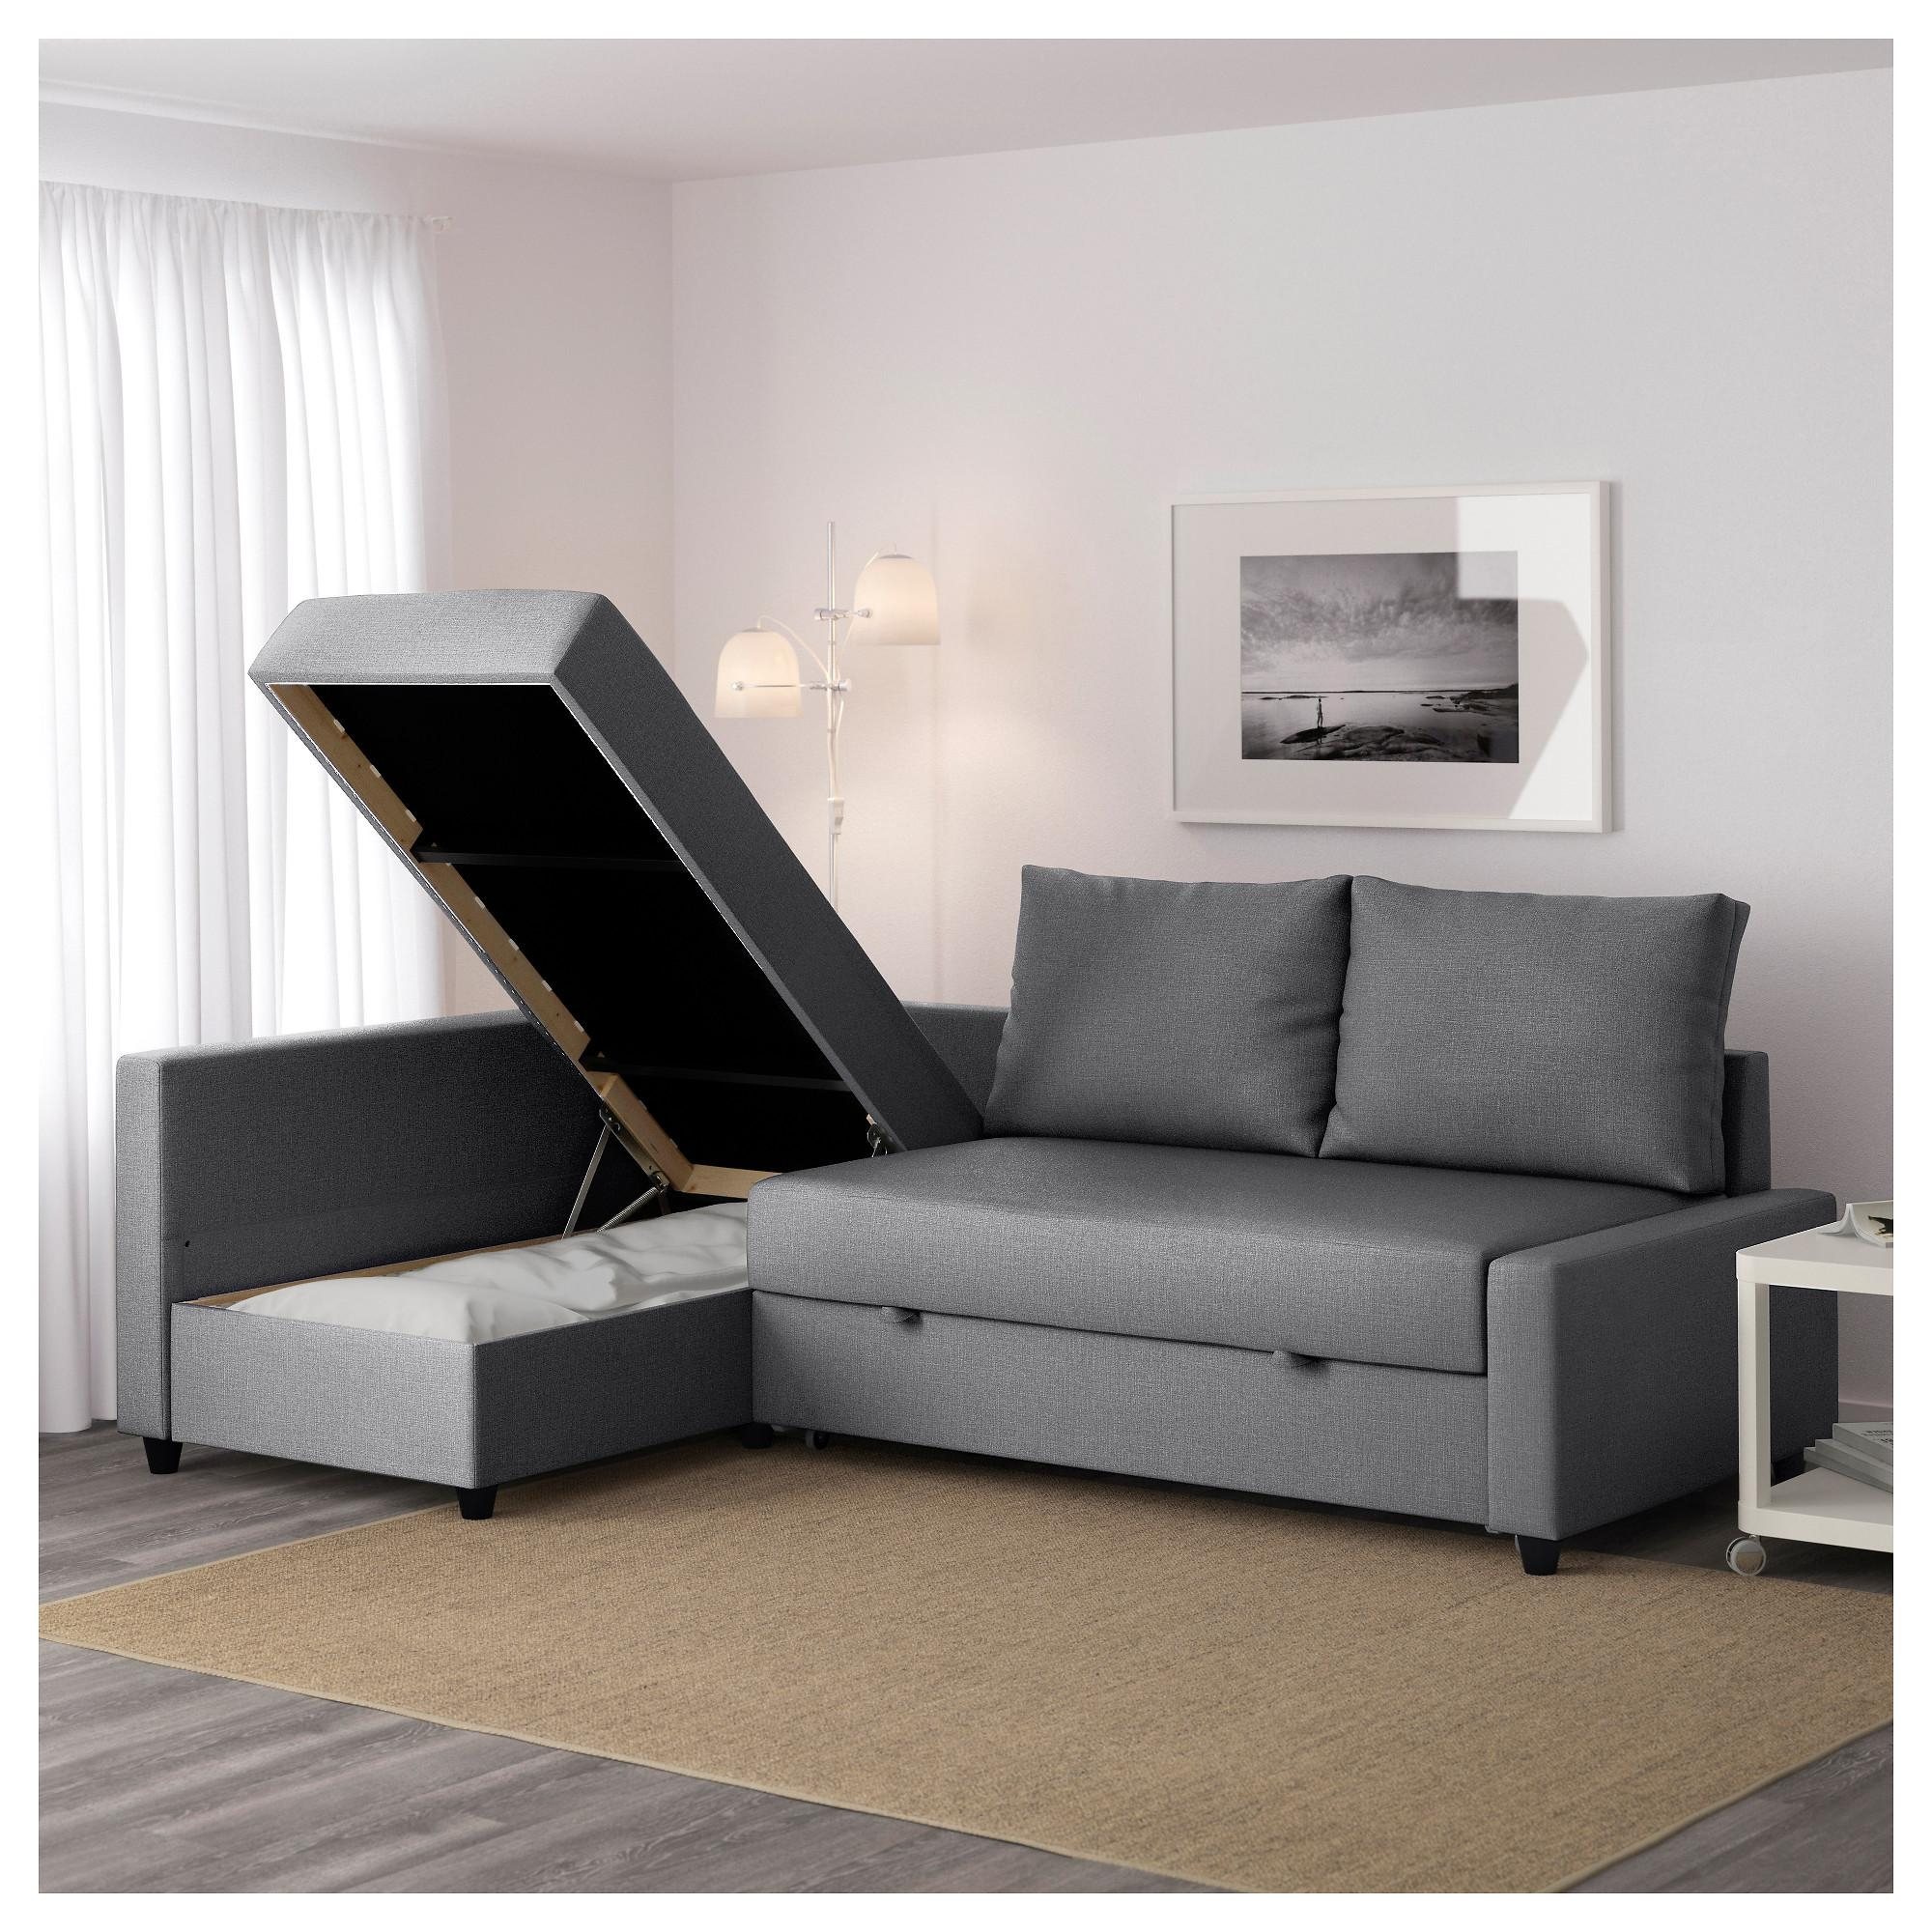 Friheten Corner Sofa Bed With Storage Skiftebo Dark Grey – Ikea Pertaining To Corner Sofa Beds (Image 9 of 20)